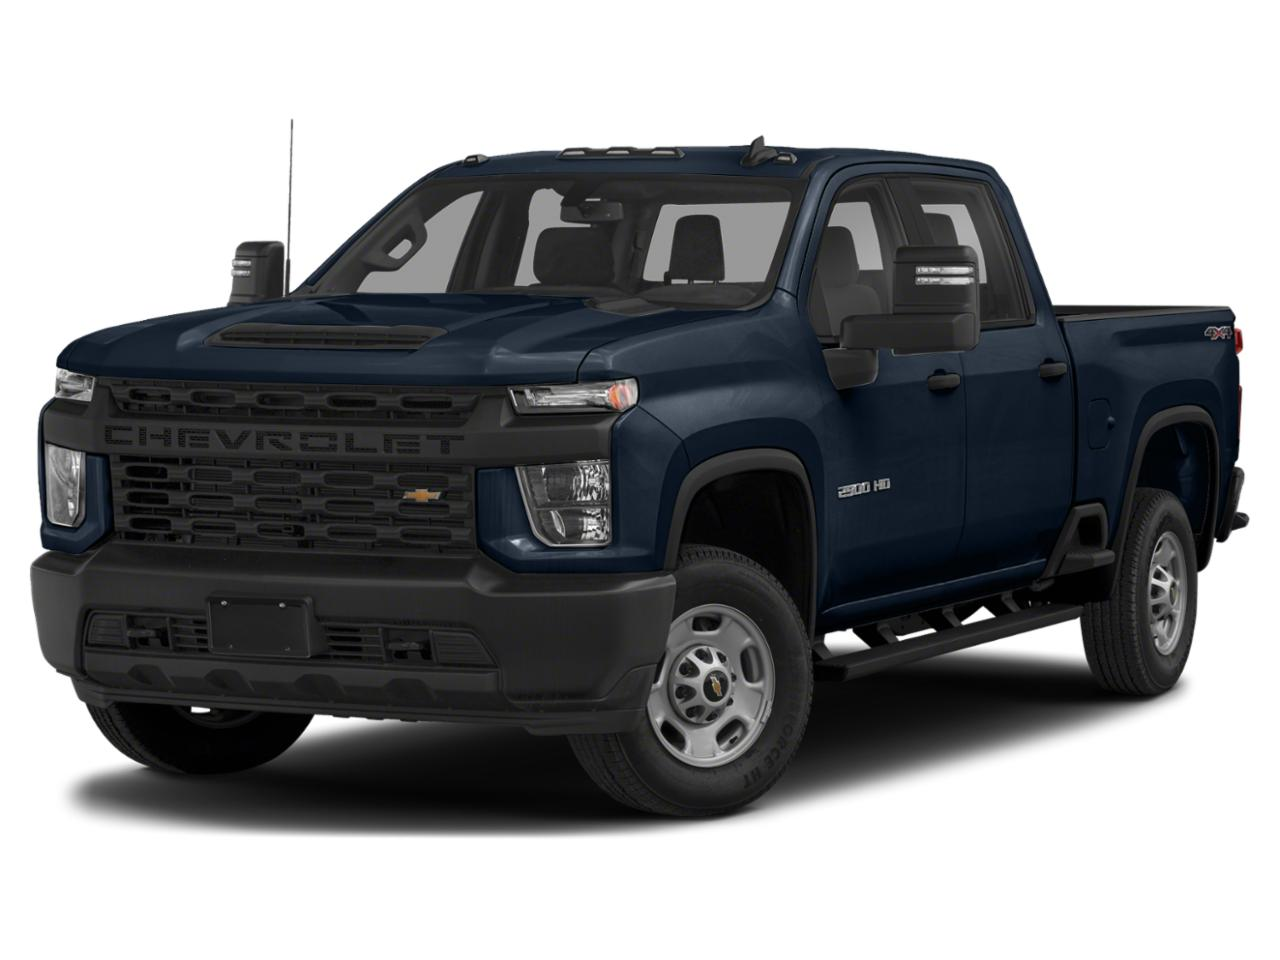 2021 Chevrolet Silverado 2500HD Vehicle Photo in South Portland, ME 04106